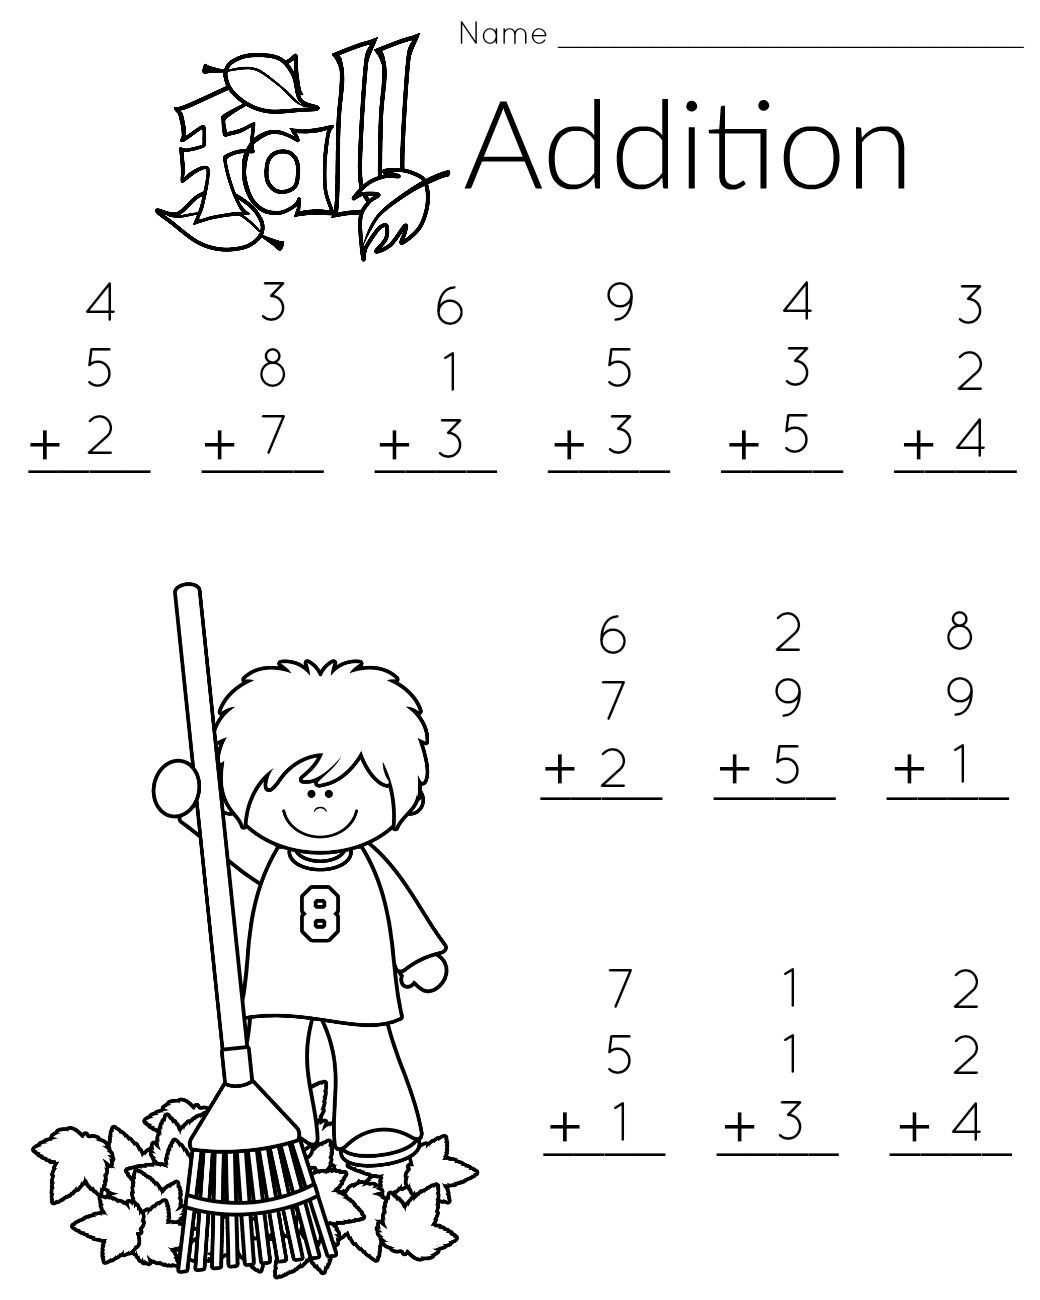 1st Grade Worksheets Best Coloring Pages For Kids Math Addition Worksheets First Grade Math Worksheets Free Printable Math Worksheets [ 1300 x 1040 Pixel ]